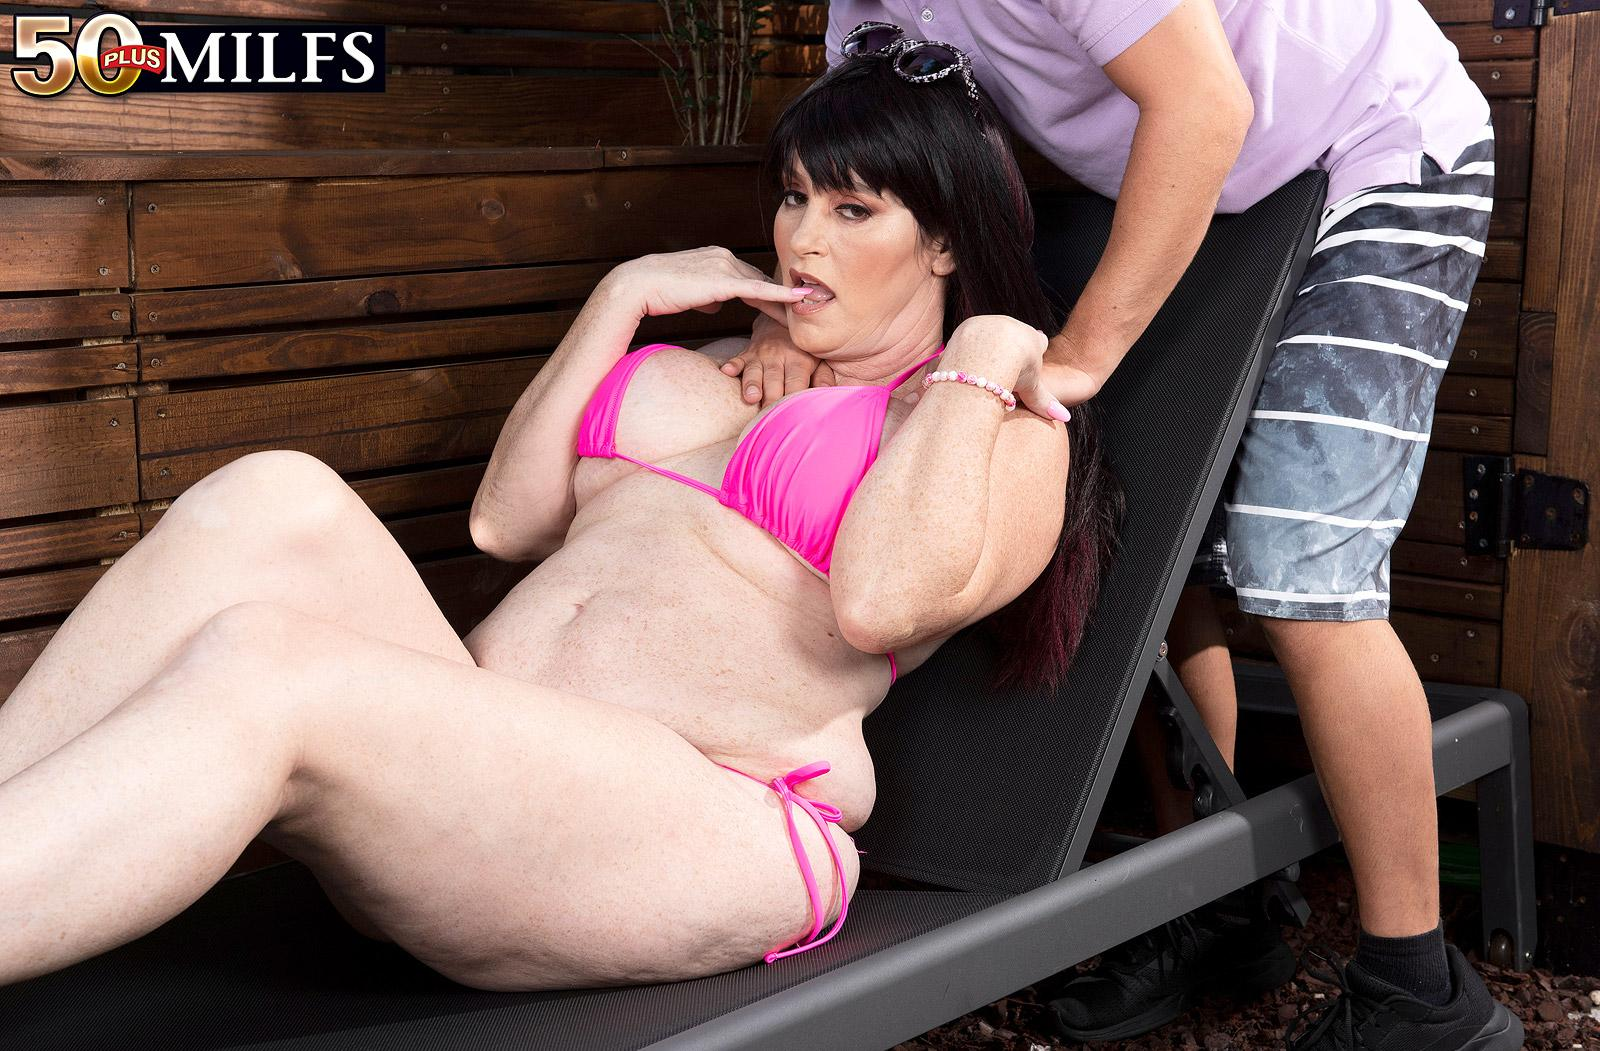 Sherry's step-son fucks her ass - Sherry Stunns and Nicky Rebel (81 Photos) - 50 Plus MILFs picture 2